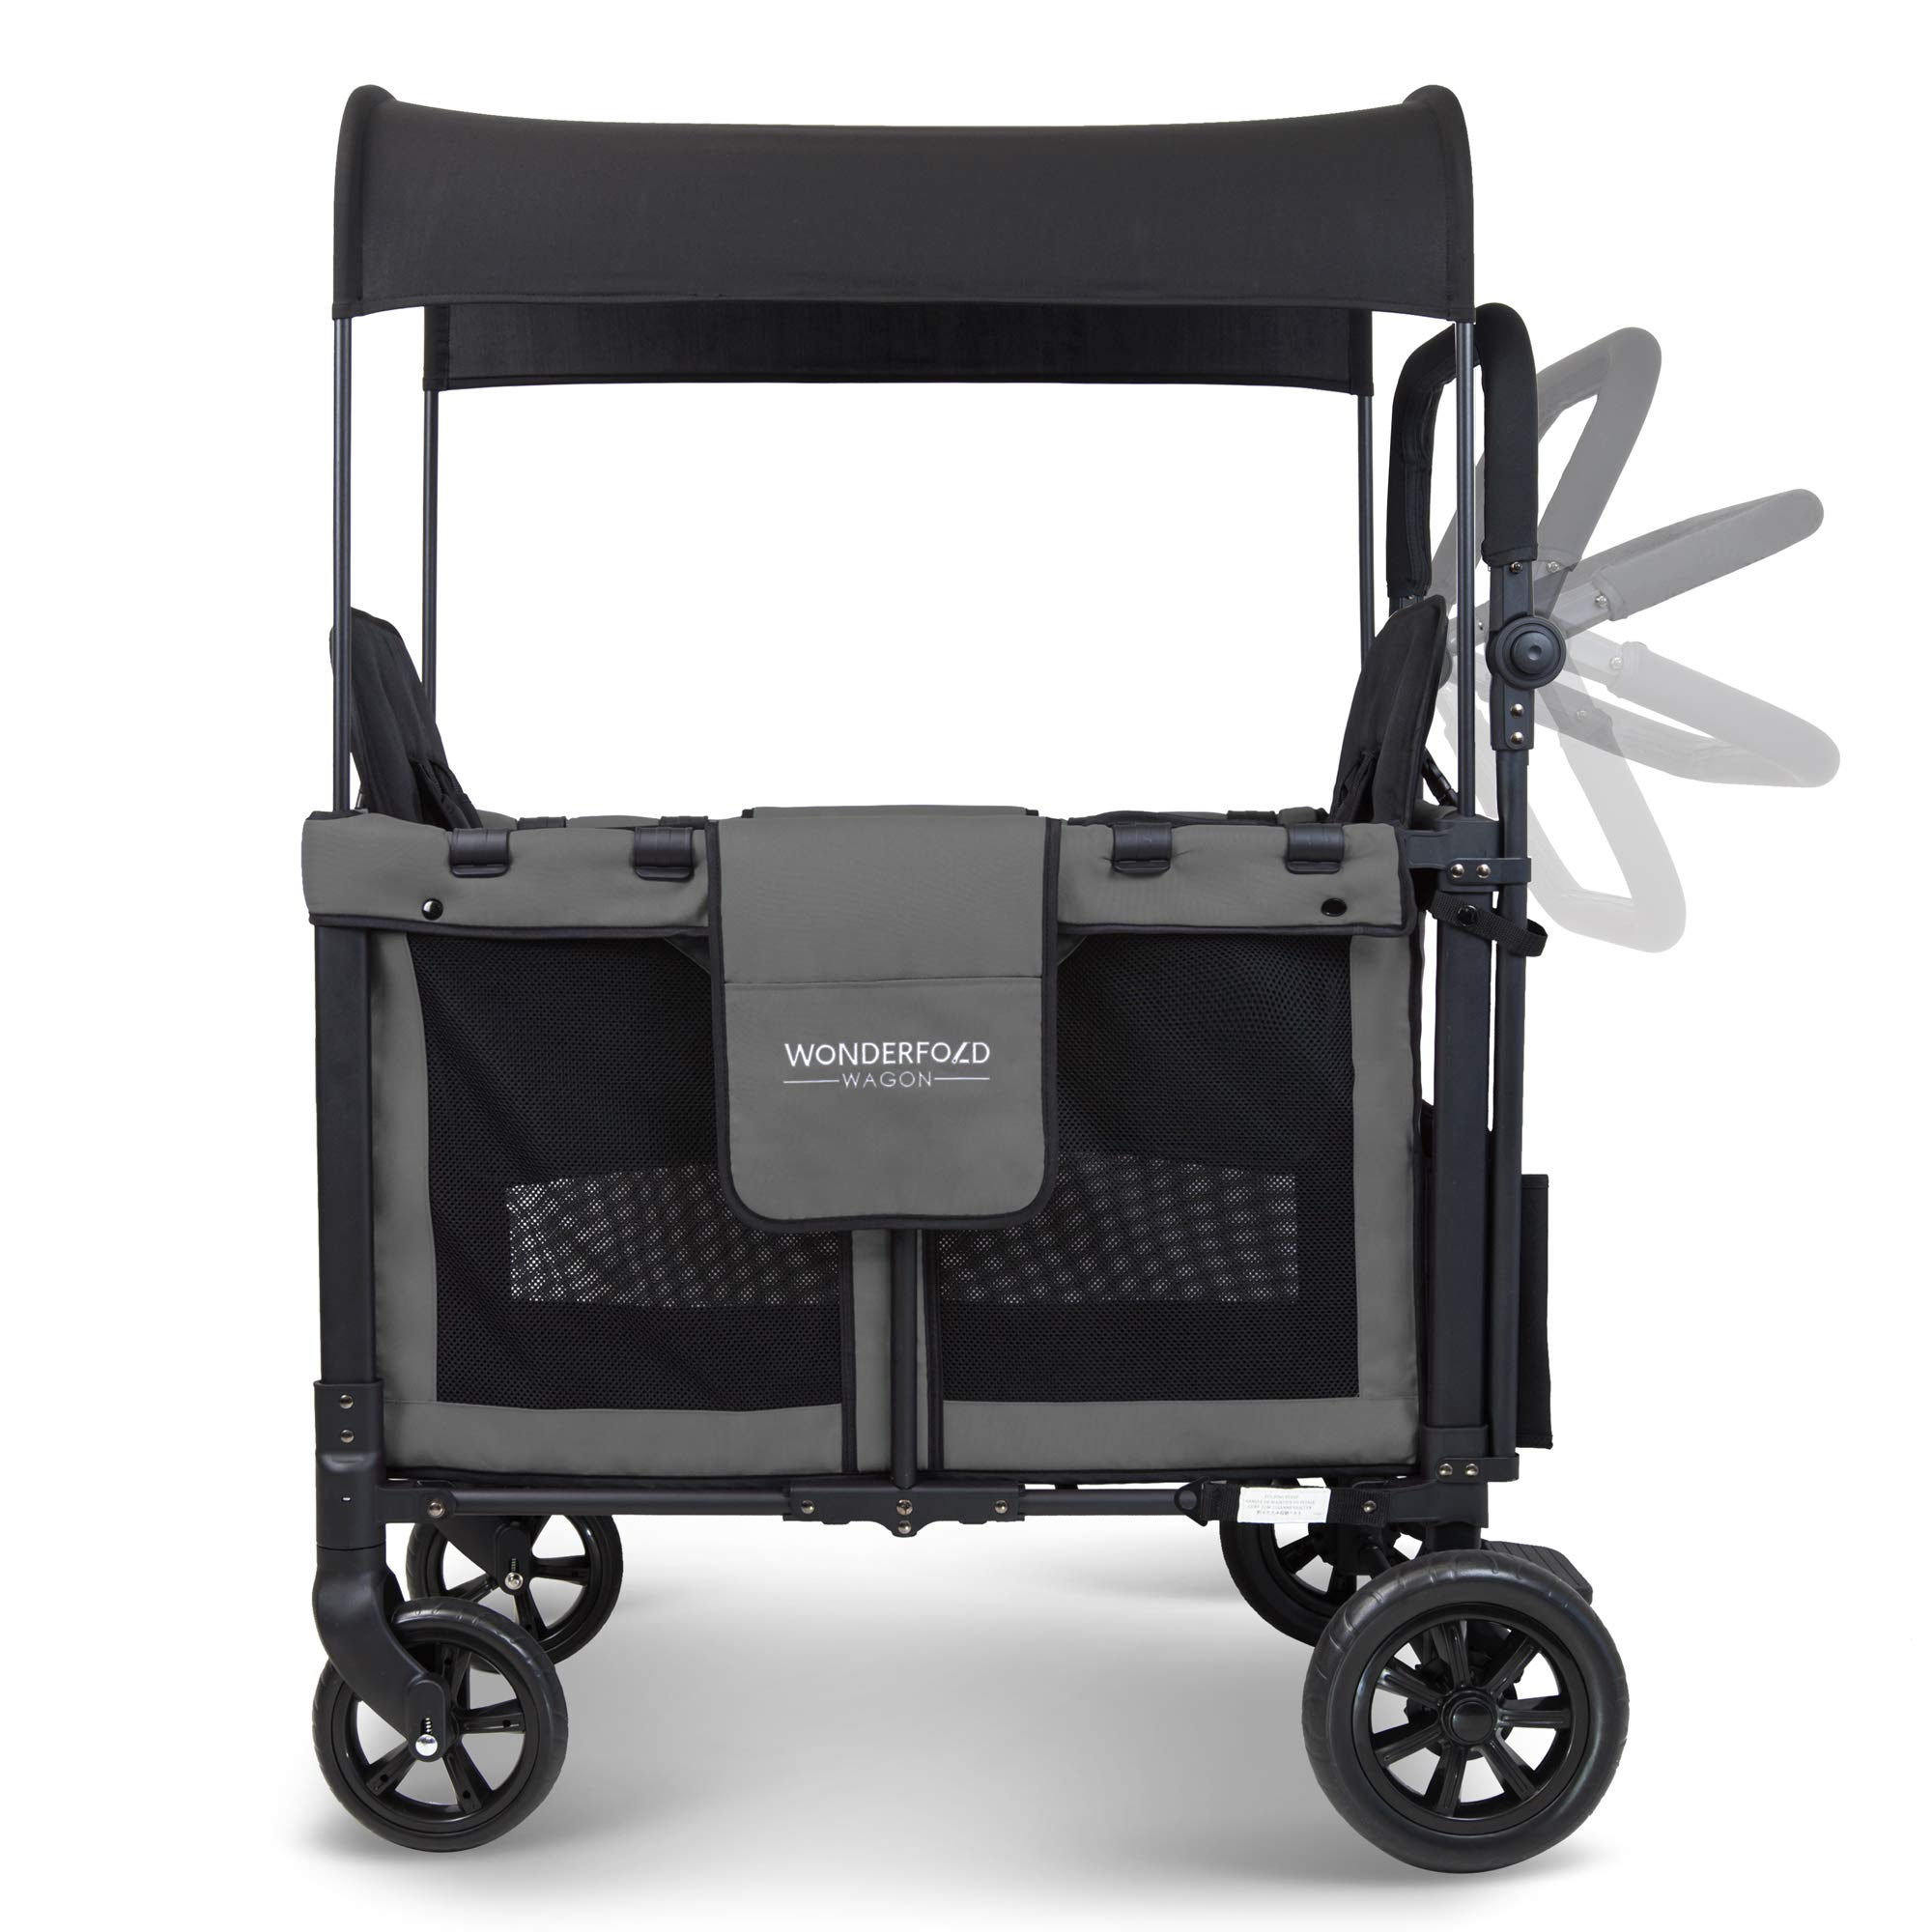 WonderFold Multi-Function Push 2 Passenger Double Folding Stroller, Adjustable Canopy & Removable Chair Seat Up To 2 Toddlers (Charcoal Gray) by WonderFold (Image #3)